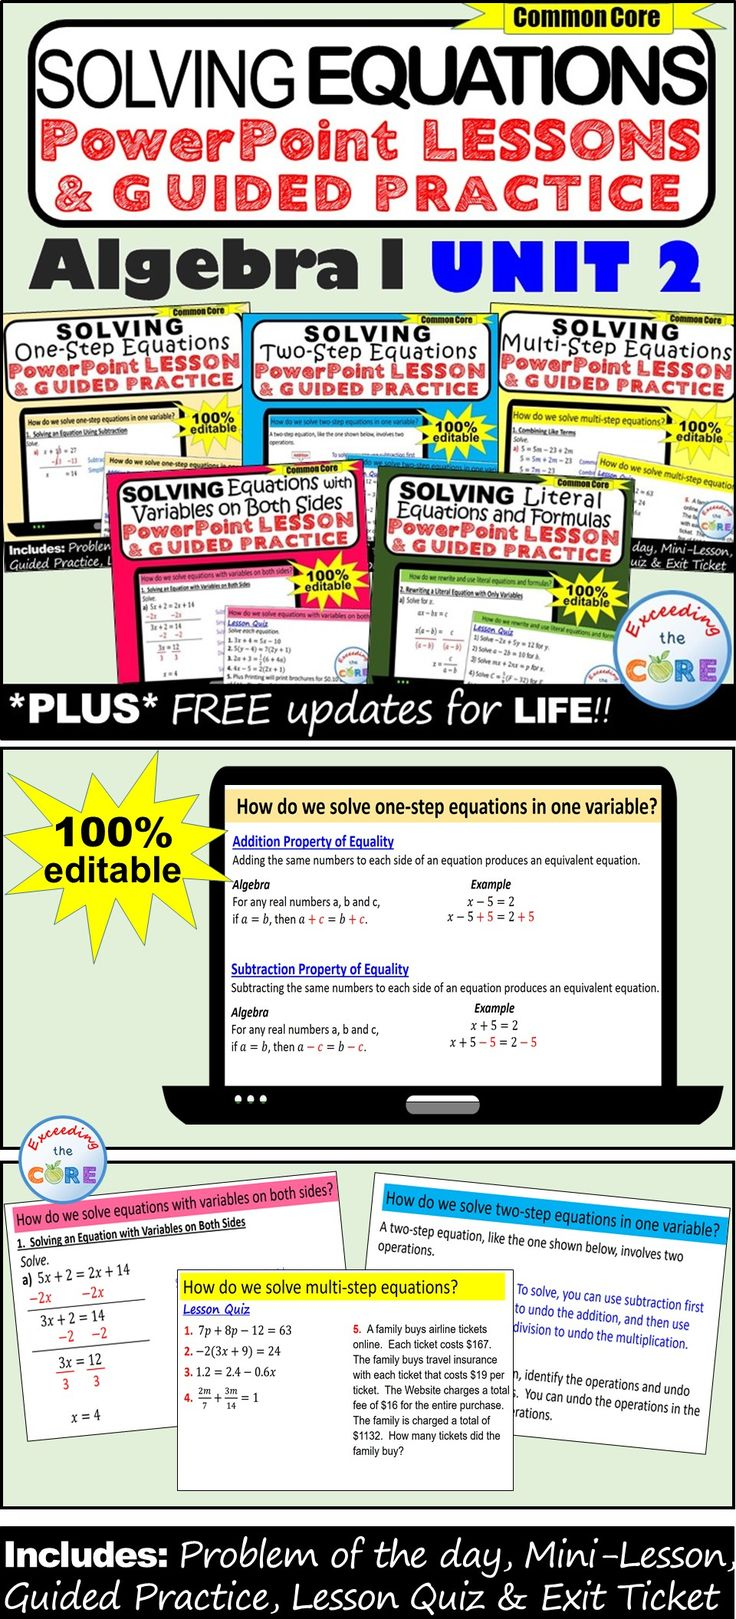 Get your students successfully SOLVING EQUATIONS with this PowerPoint Presentation BUNDLE.  This bundle includes 5 PowerPoint Lessons that guide students in creating equations and using equations to solve problems.  This BUNDLE includes all of the following PowerPoint Lessons: ✔ SOLVING ONE-STEP EQUATIONS  ✔ SOLVING TWO-STEP EQUATIONS  ✔ SOLVING MULTI-STEP EQUATIONS  ✔ SOLVING EQUATIONS WITH VARIABLES ON BOTH SIDES ✔ SOLVING LITERAL EQUATIONS & FORMULAS. 9th grade algebra 1 A.CED, A.REI